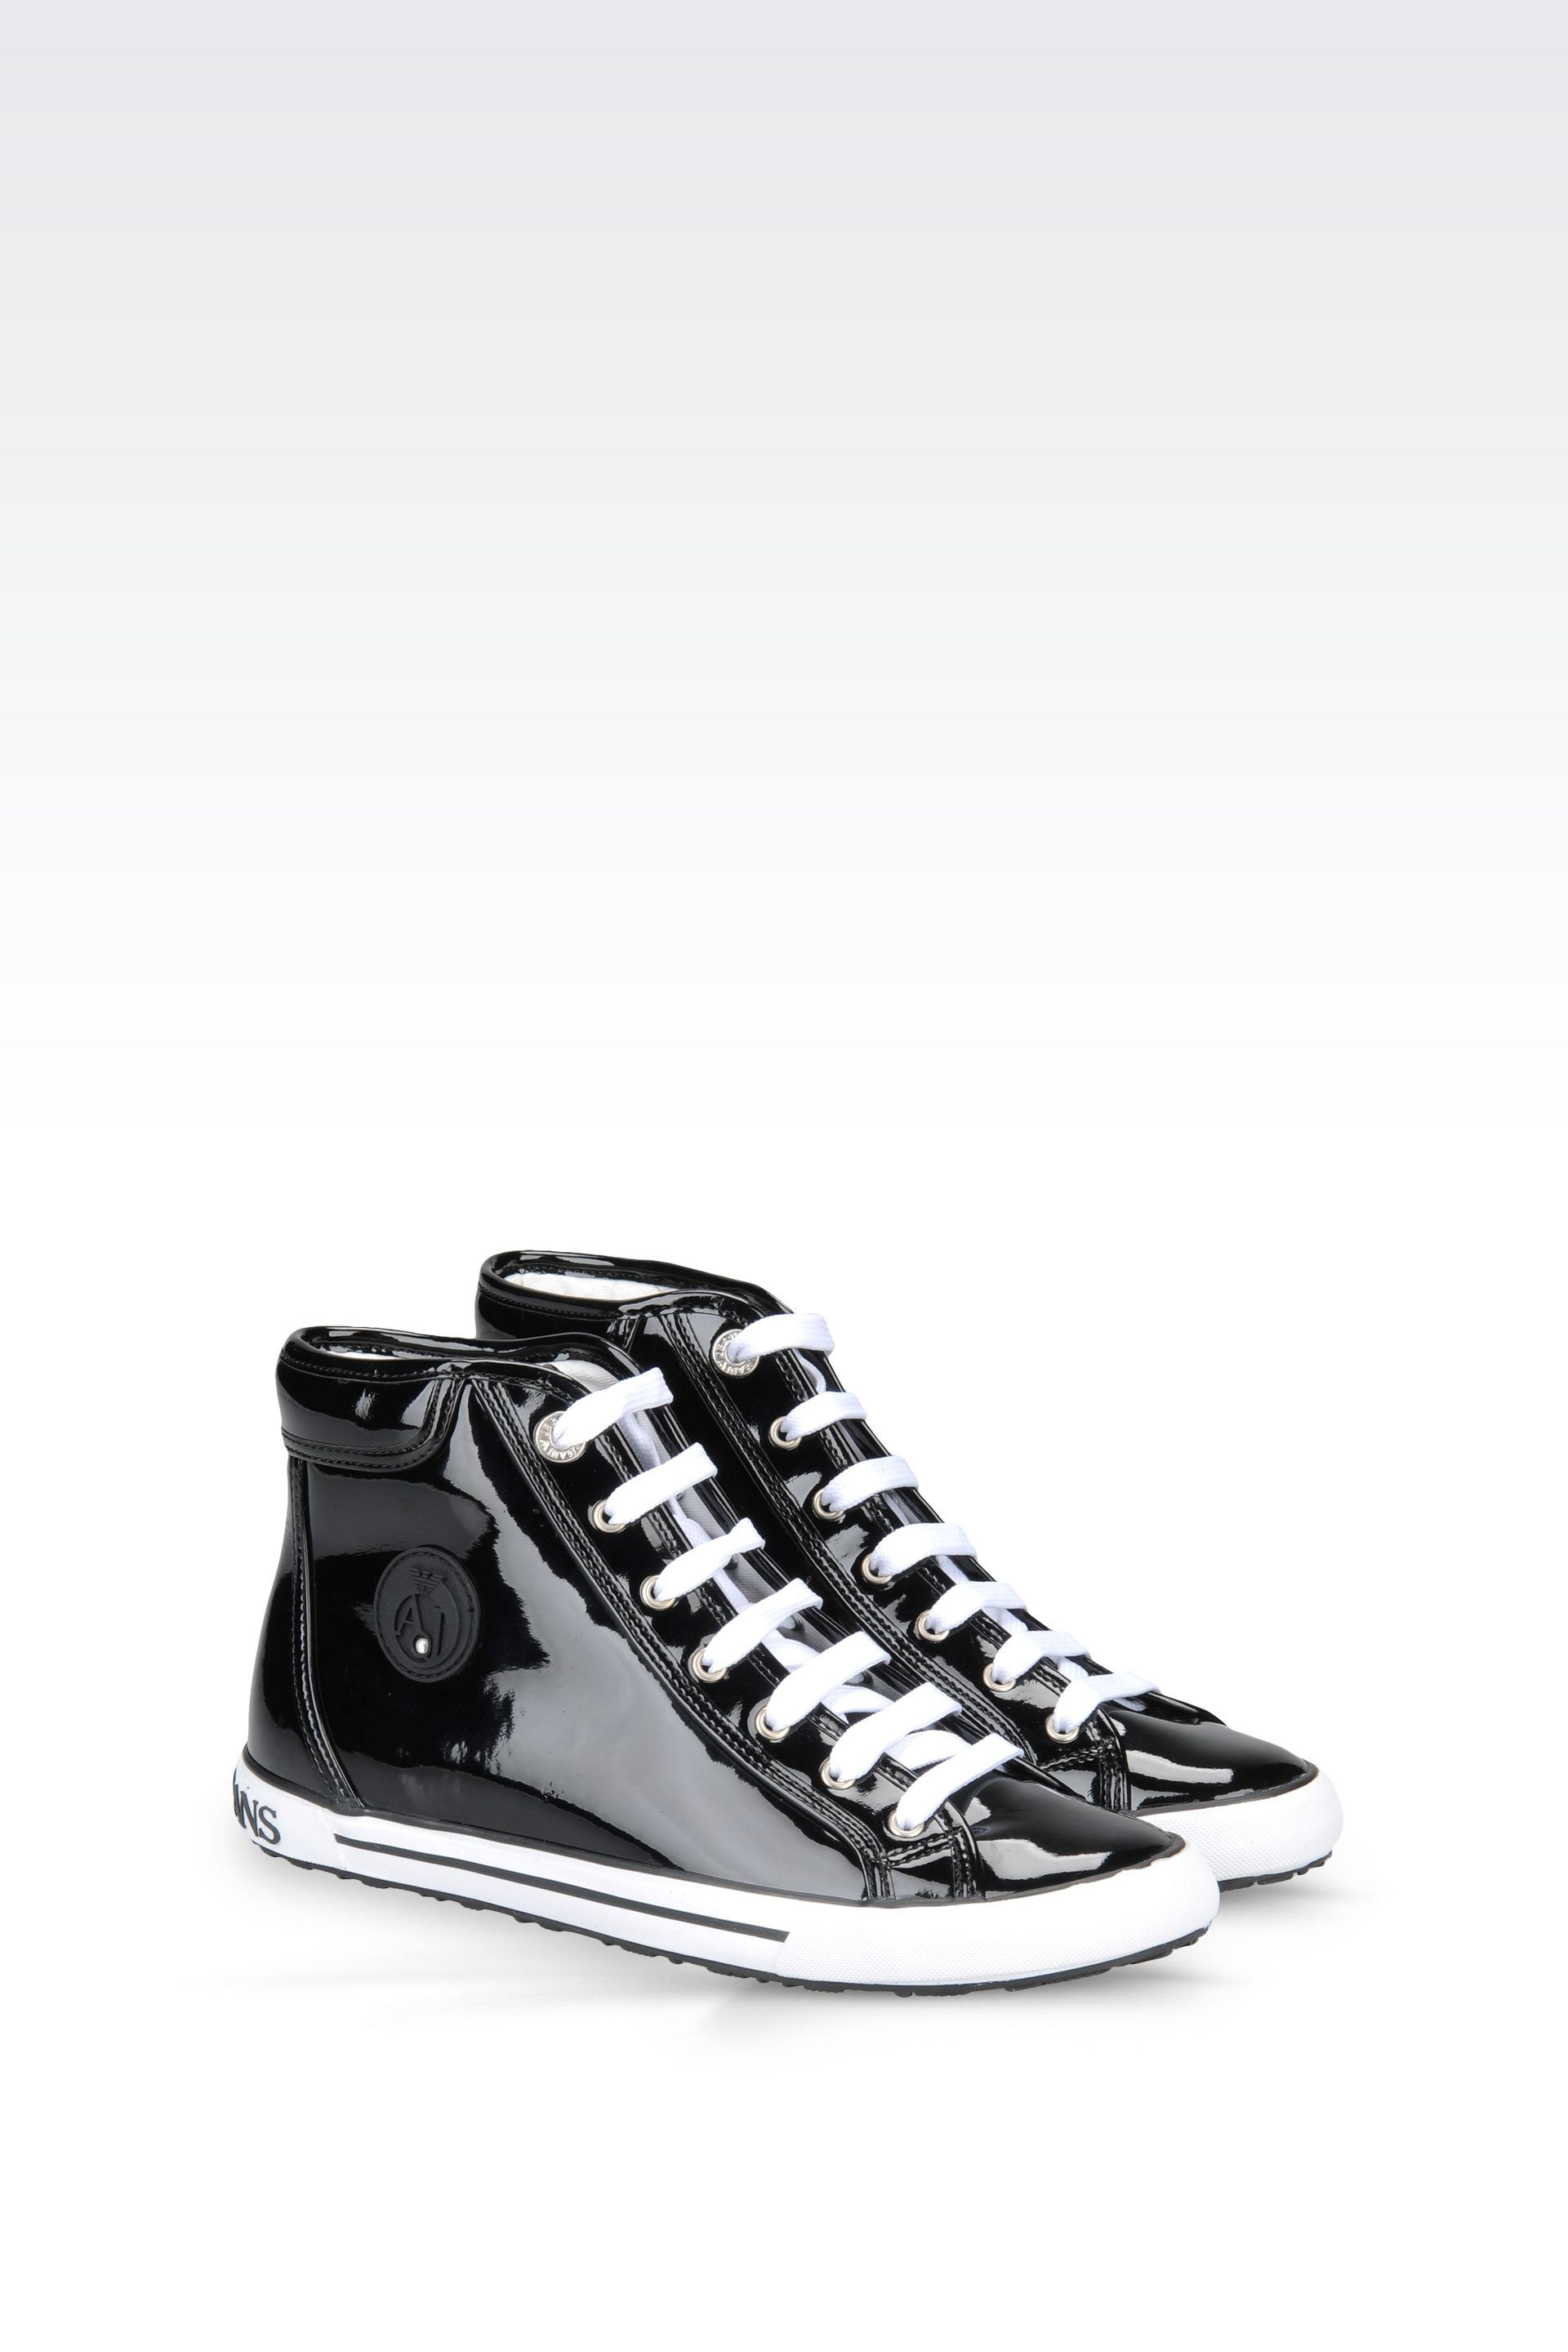 armani jeans high top sneaker in patent in black lyst. Black Bedroom Furniture Sets. Home Design Ideas